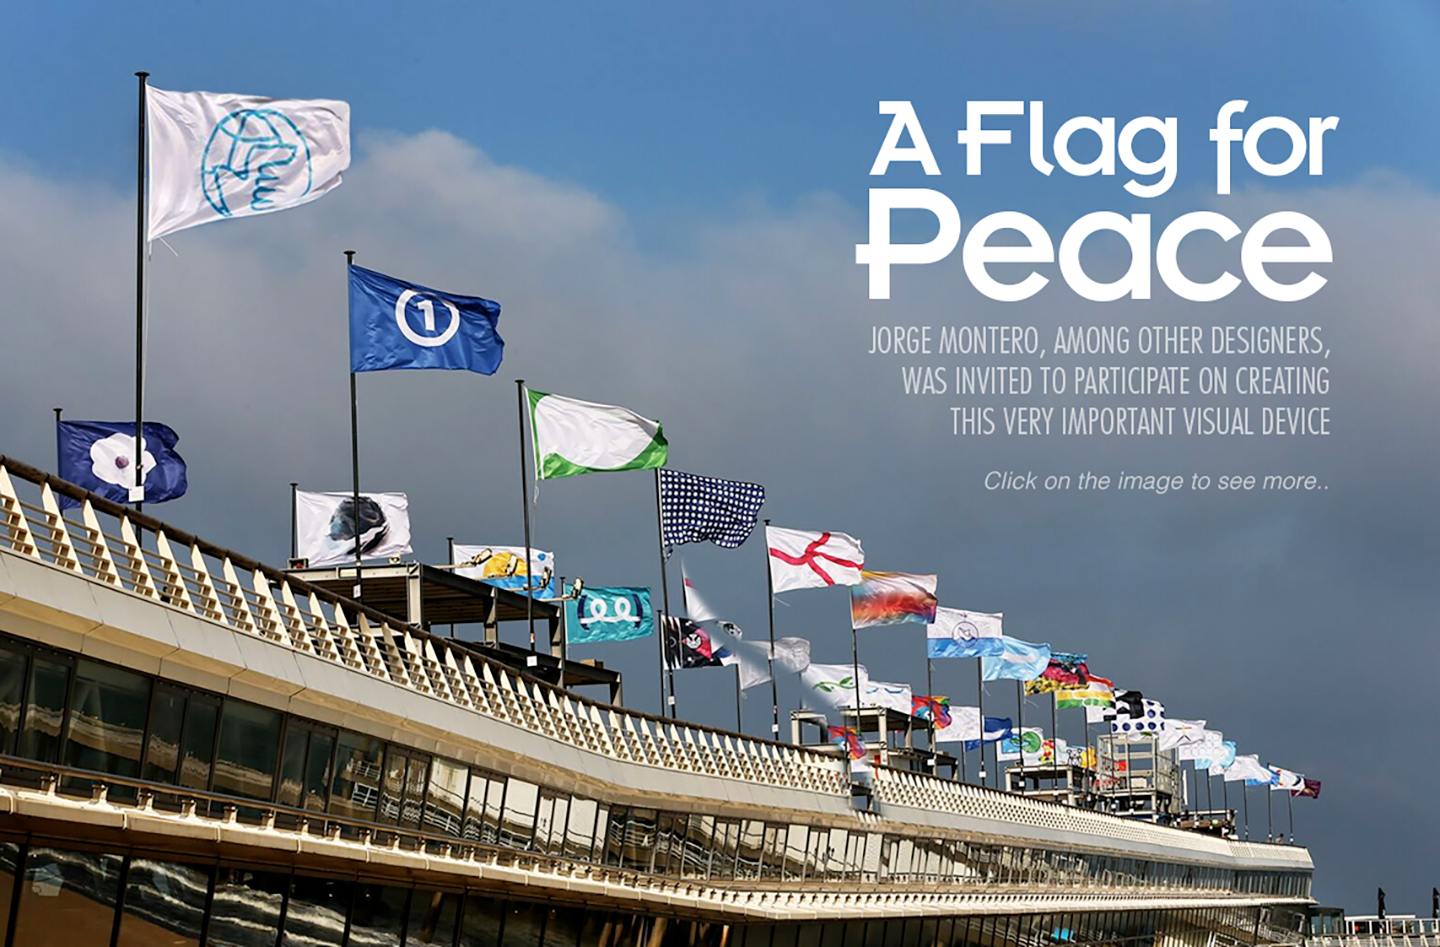 Jorge Montero and the flag of peace